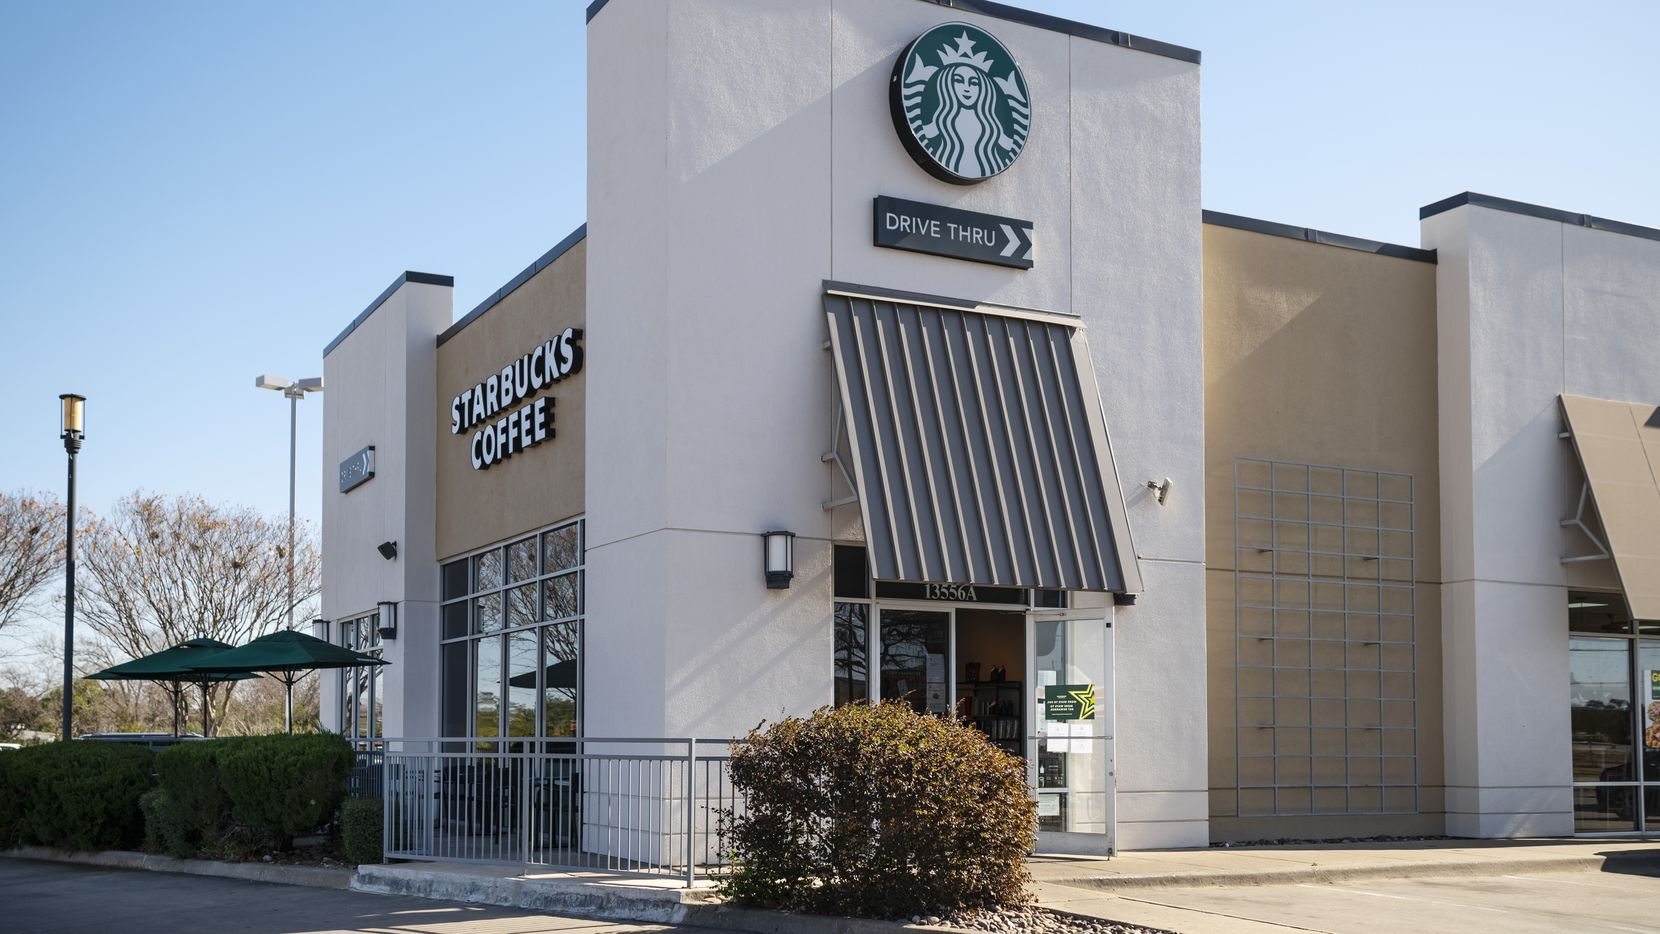 The Starbucks location at Preston Road and Alpha Road in Dallas, on Jan. 14, 2021. Starbucks locations are changing their hours due to lack of employees as some have been quarantined for COVID-19.